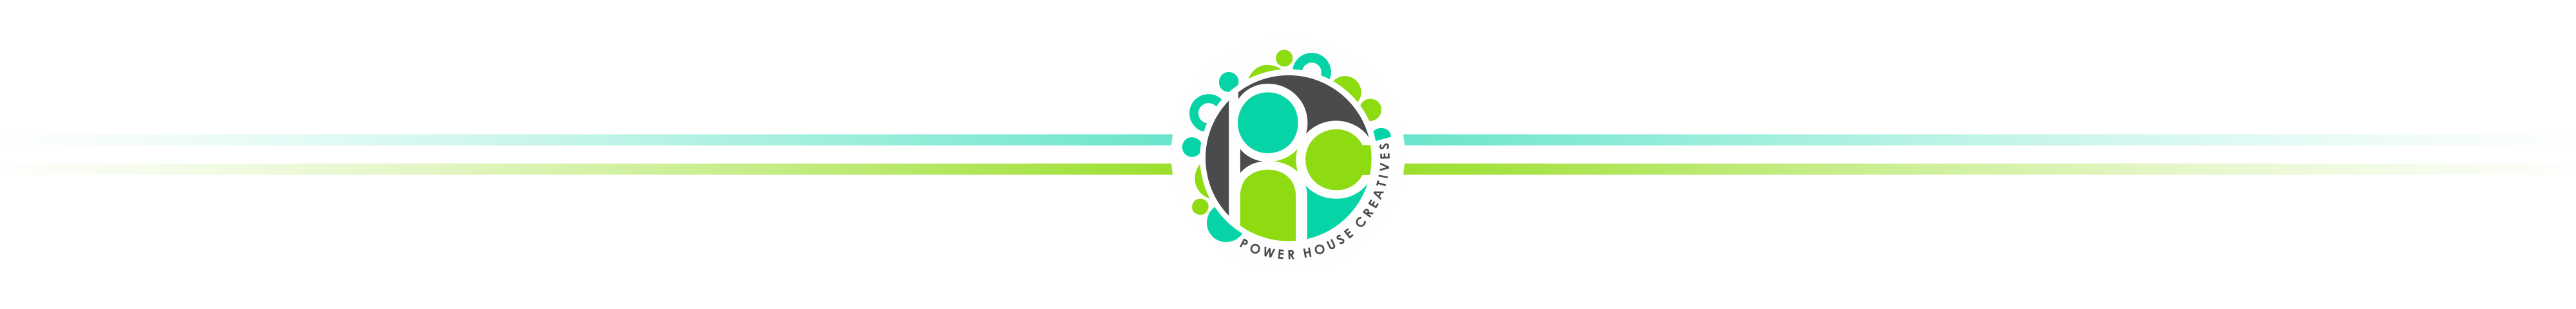 Power House Creatives Logos FINAL.png